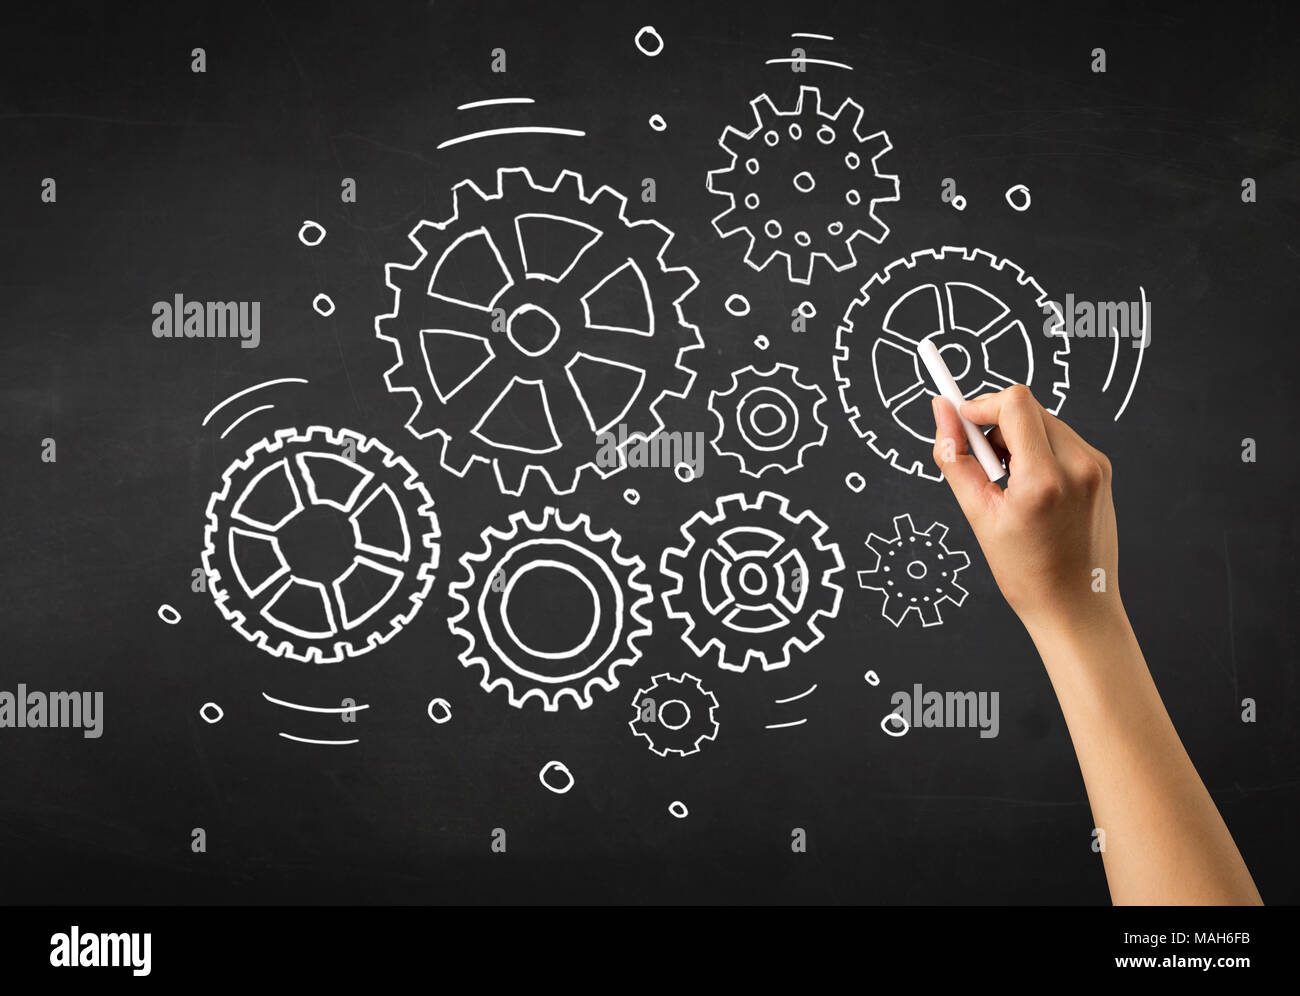 Female hand holding white chalk in front of a blackboard with gears drawn on it Stock Photo